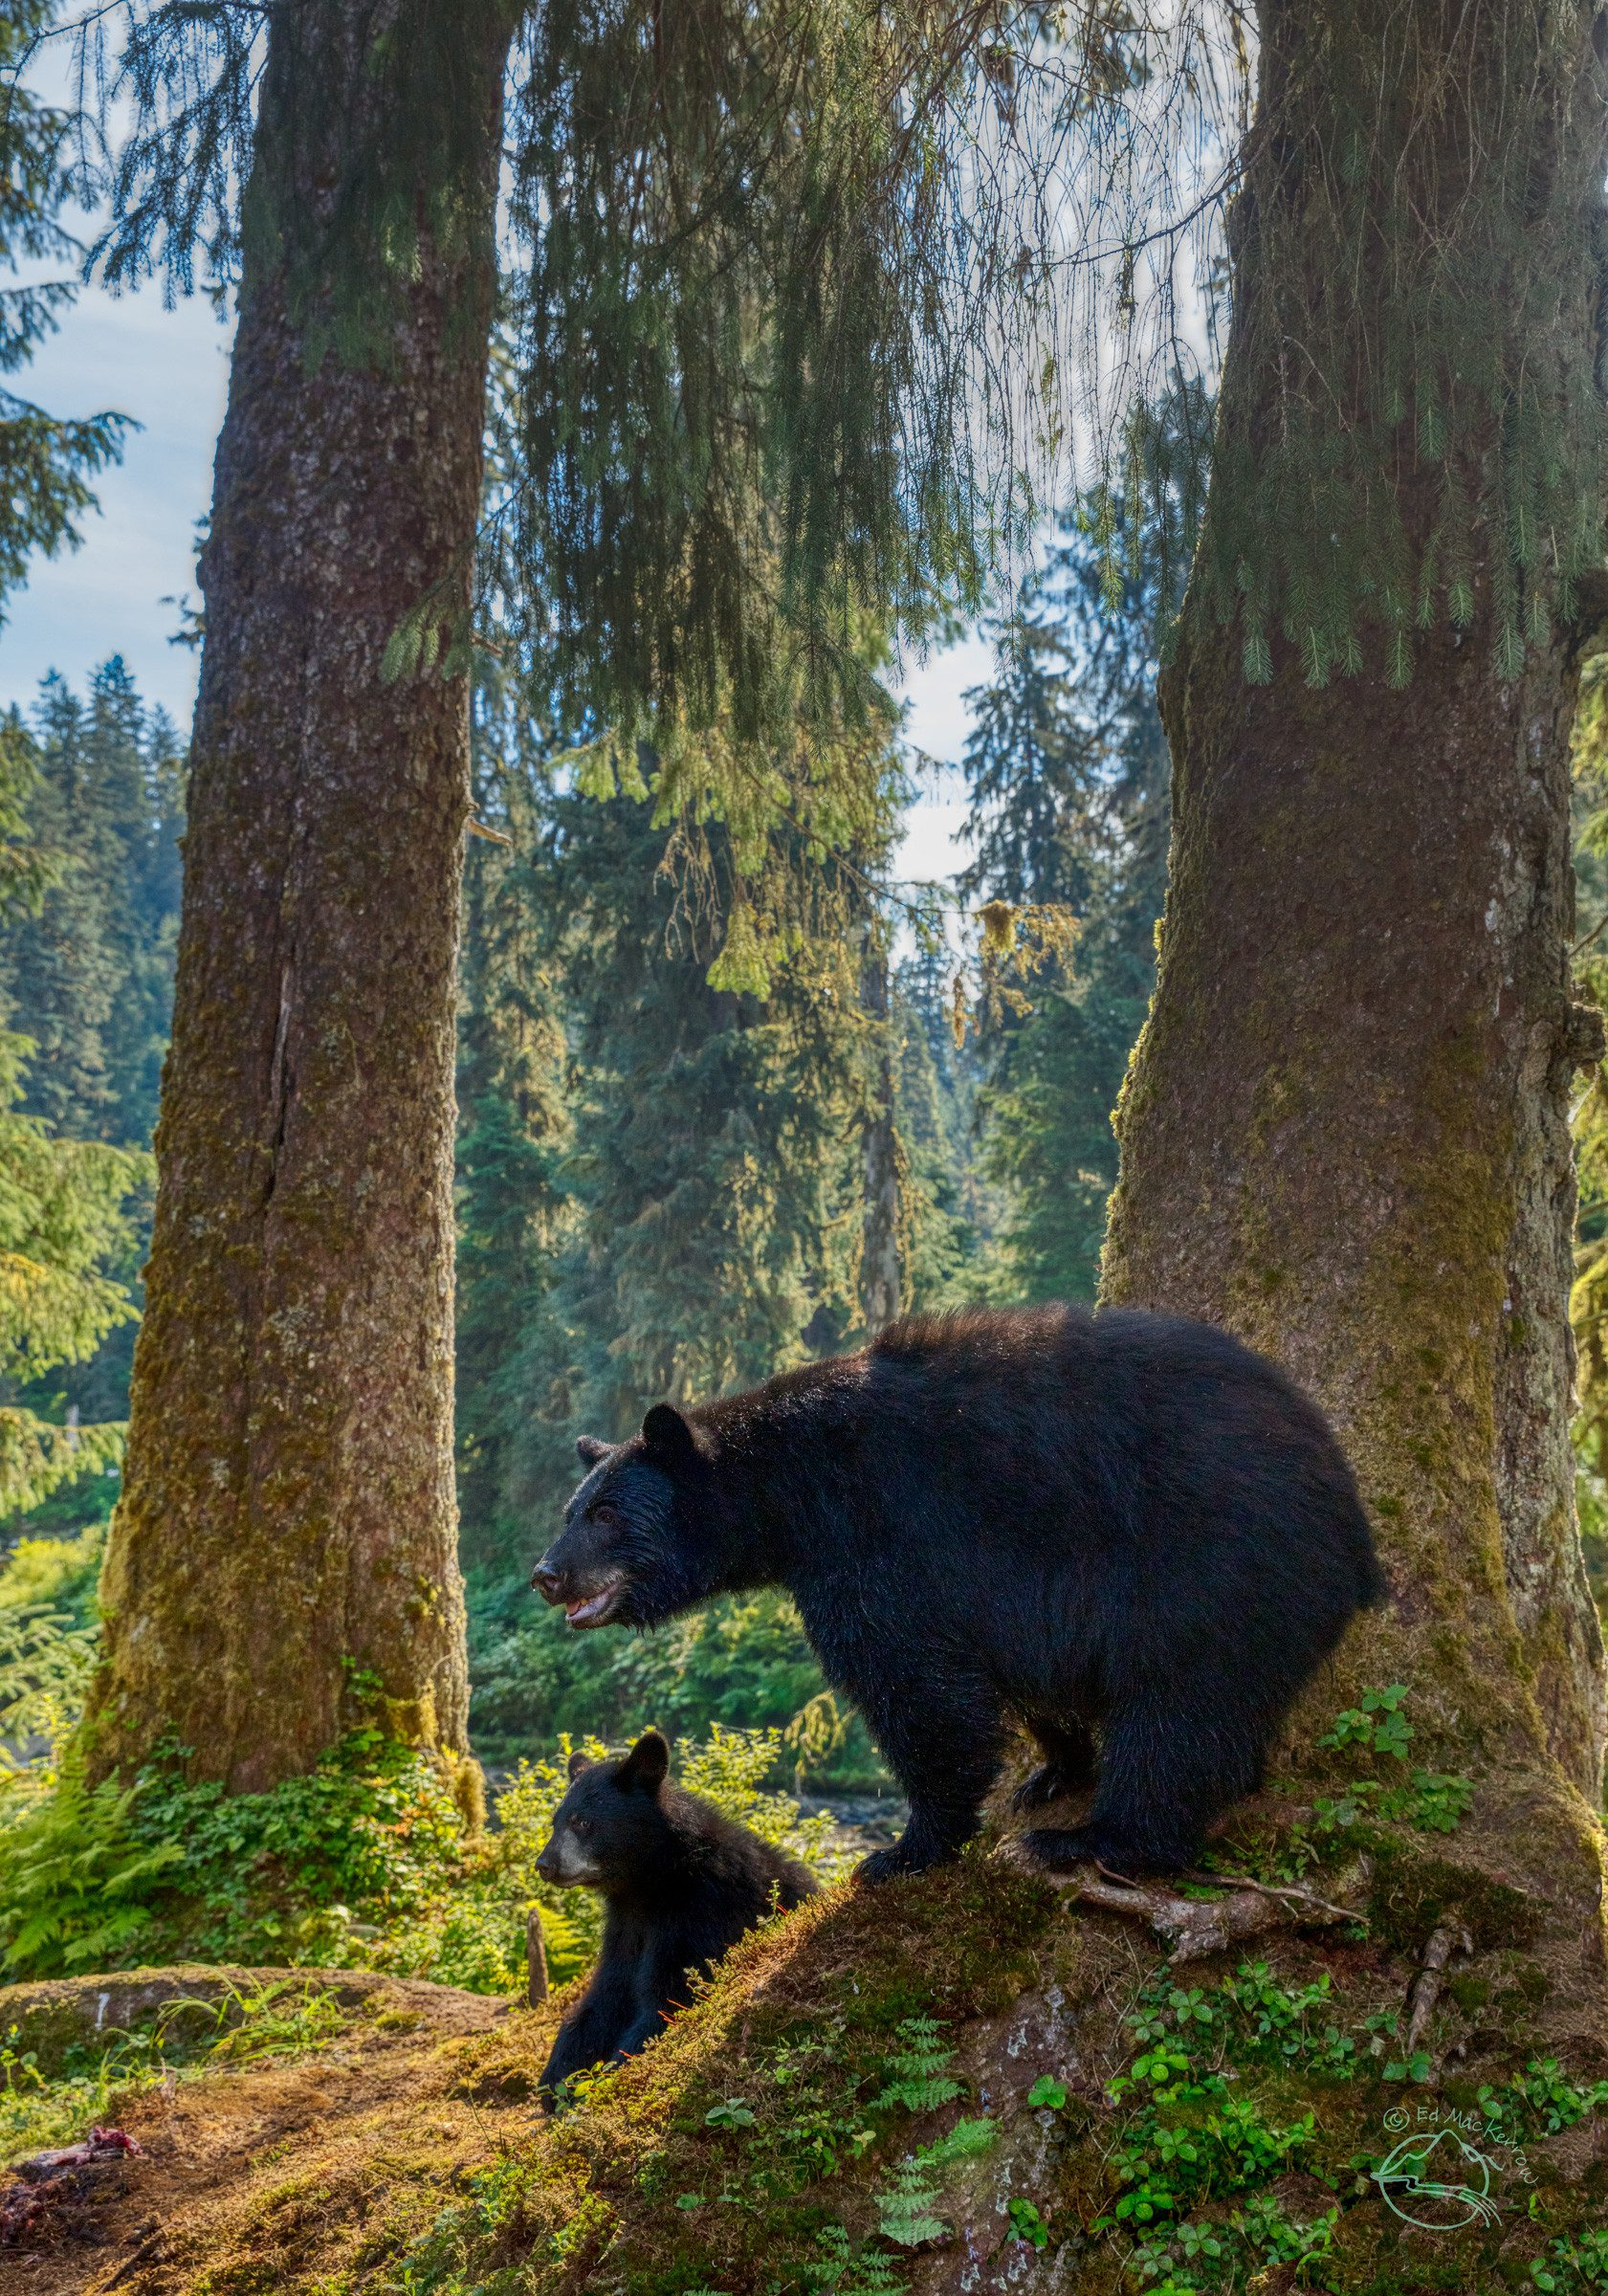 Black bear cub and mother in sunshine of rainforest.